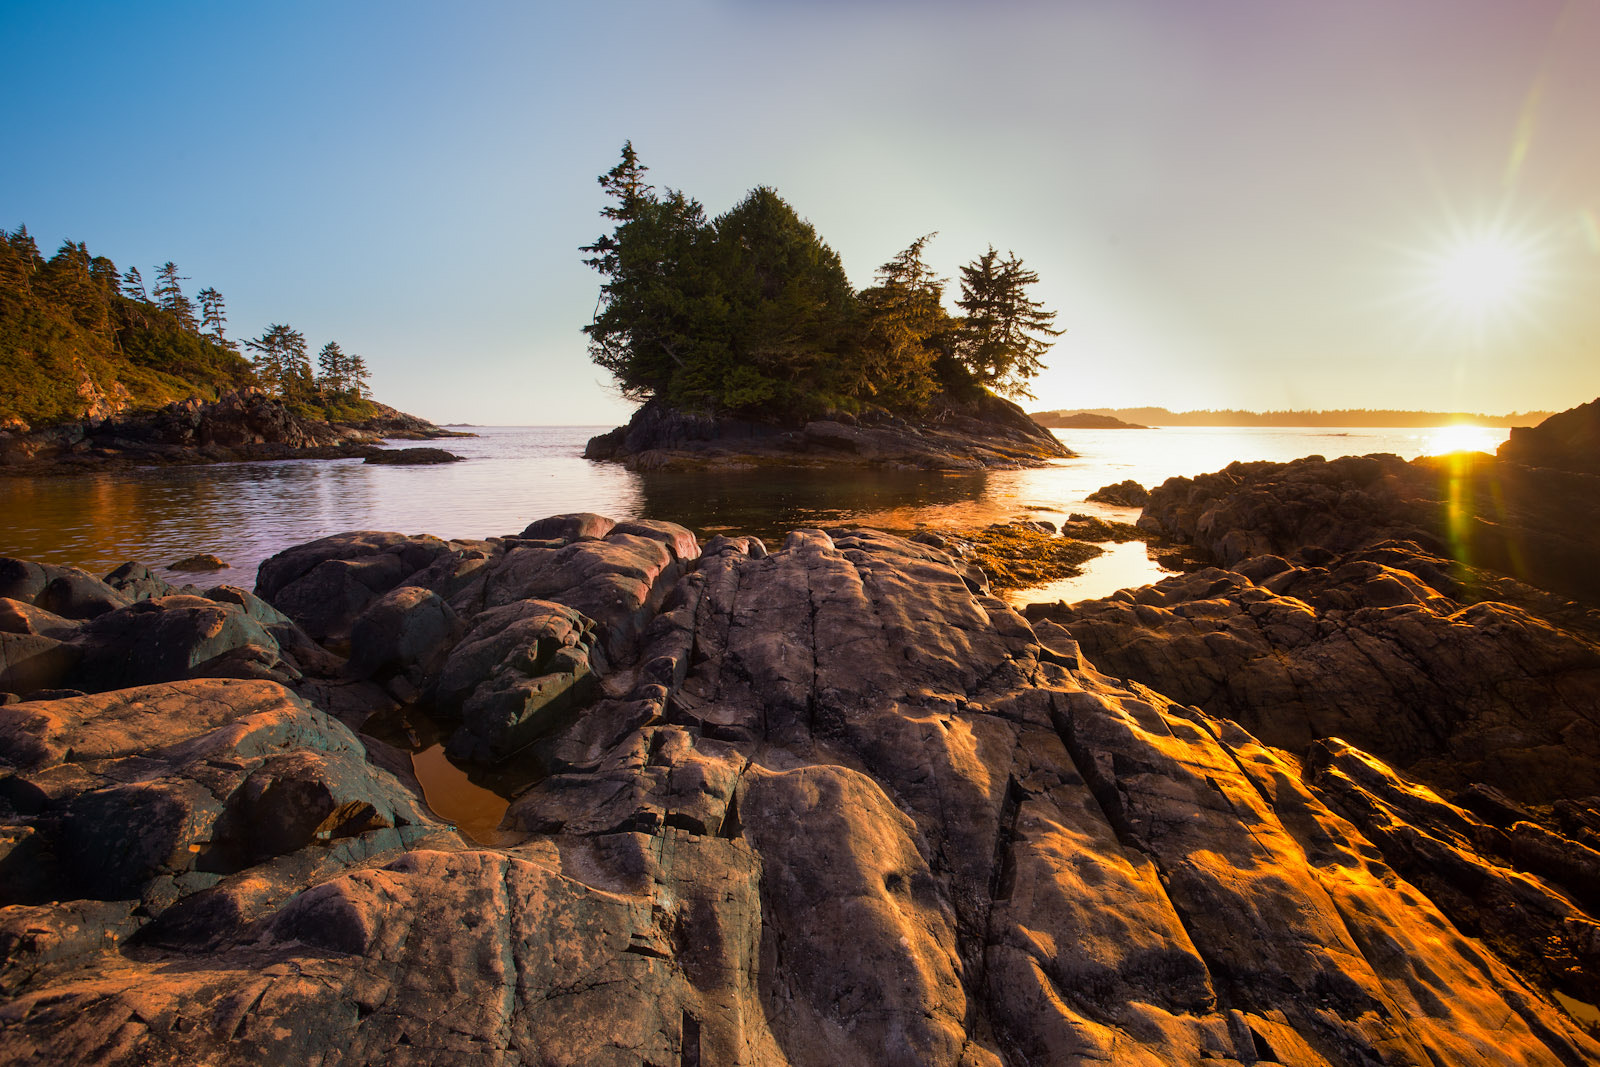 Photograph Tofino sunset by Thierry Hennet on 500px